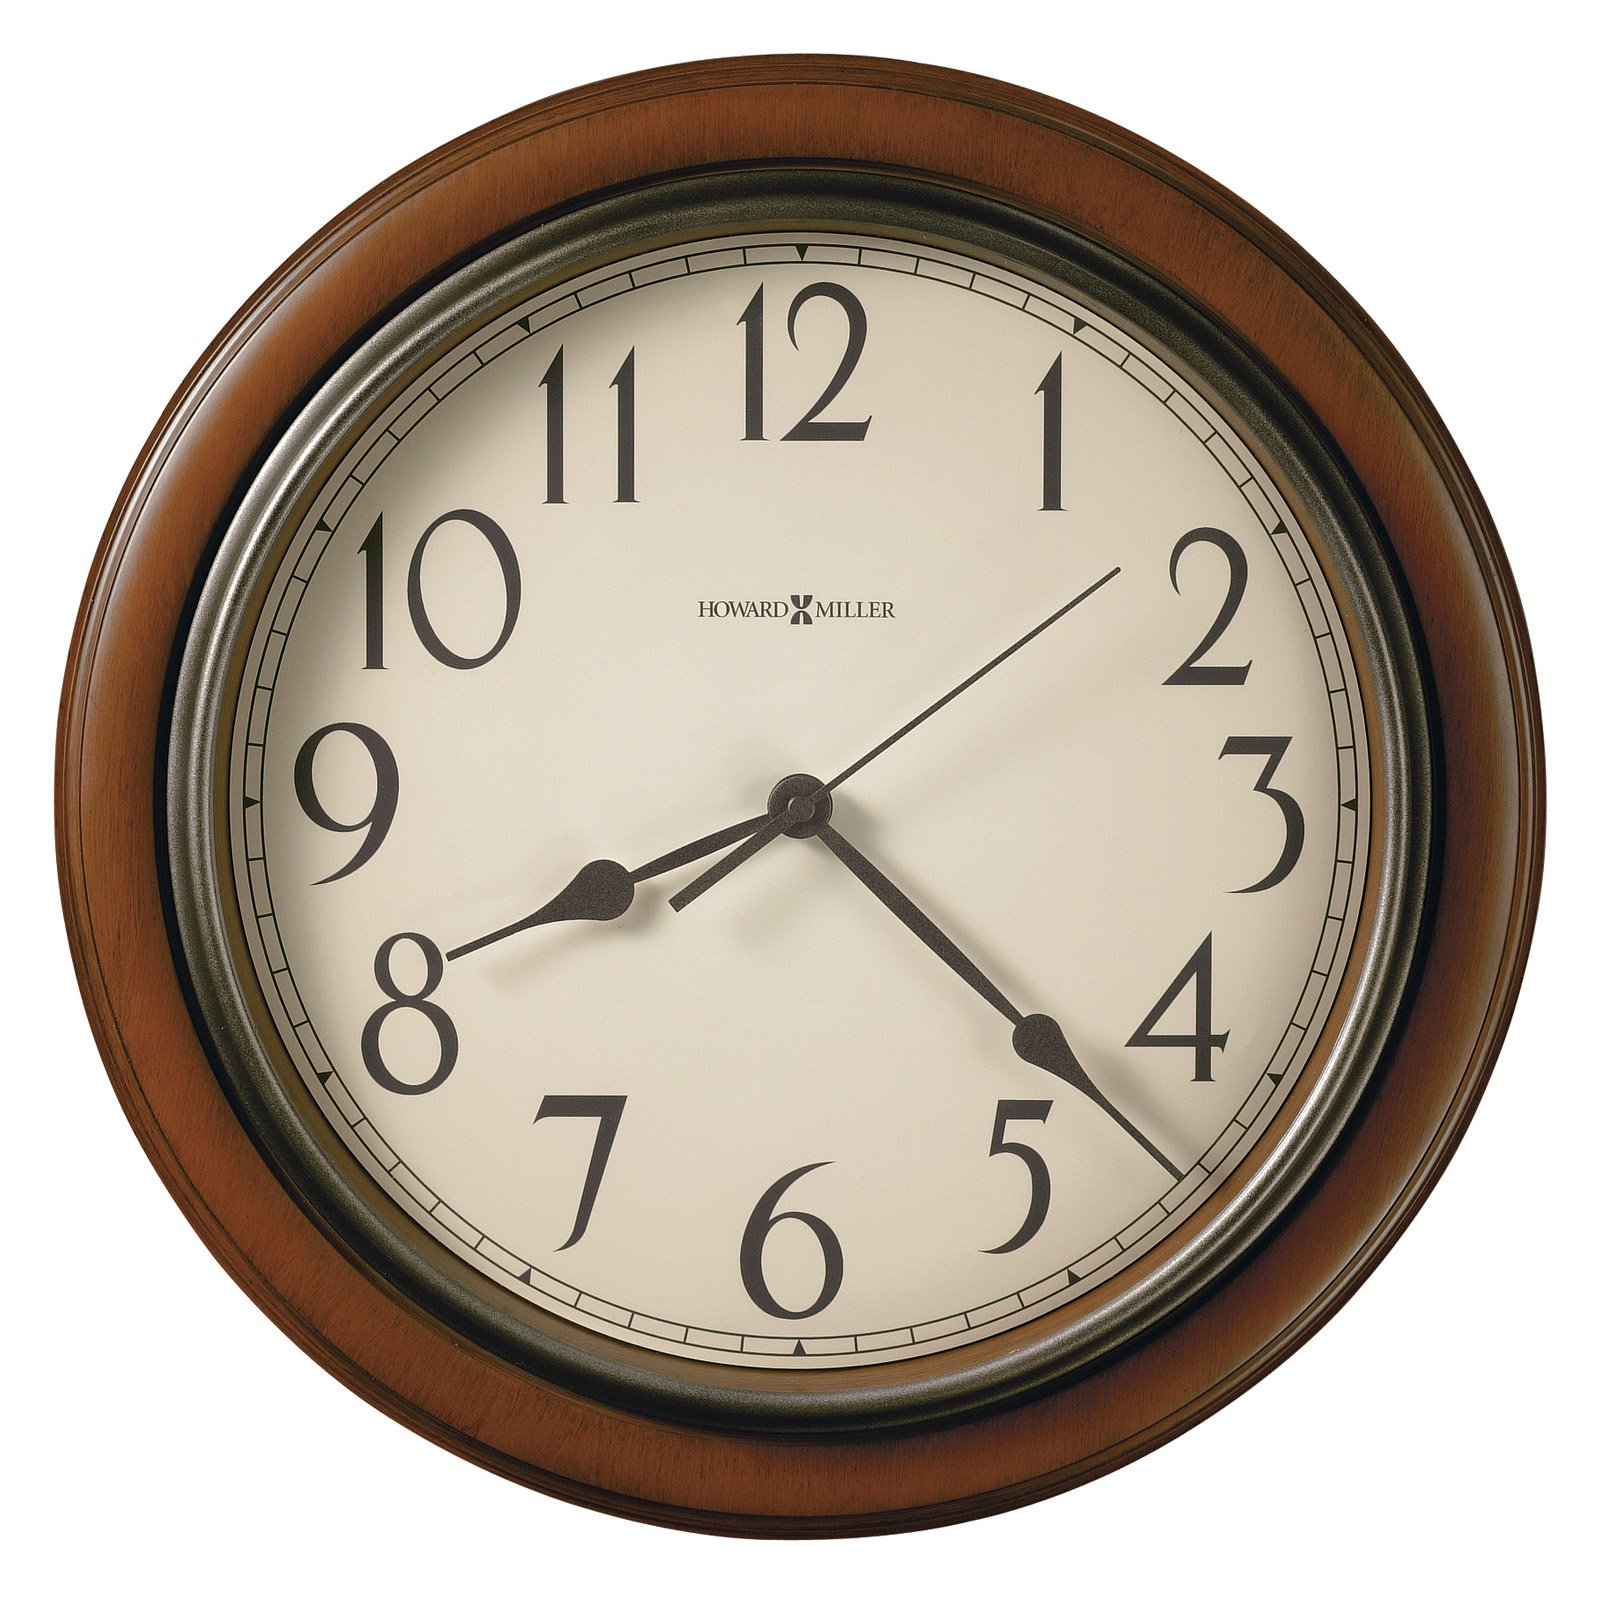 Howard Miller 625-418 Kalvin 15.25 in. Wall Clock by Howard Miller